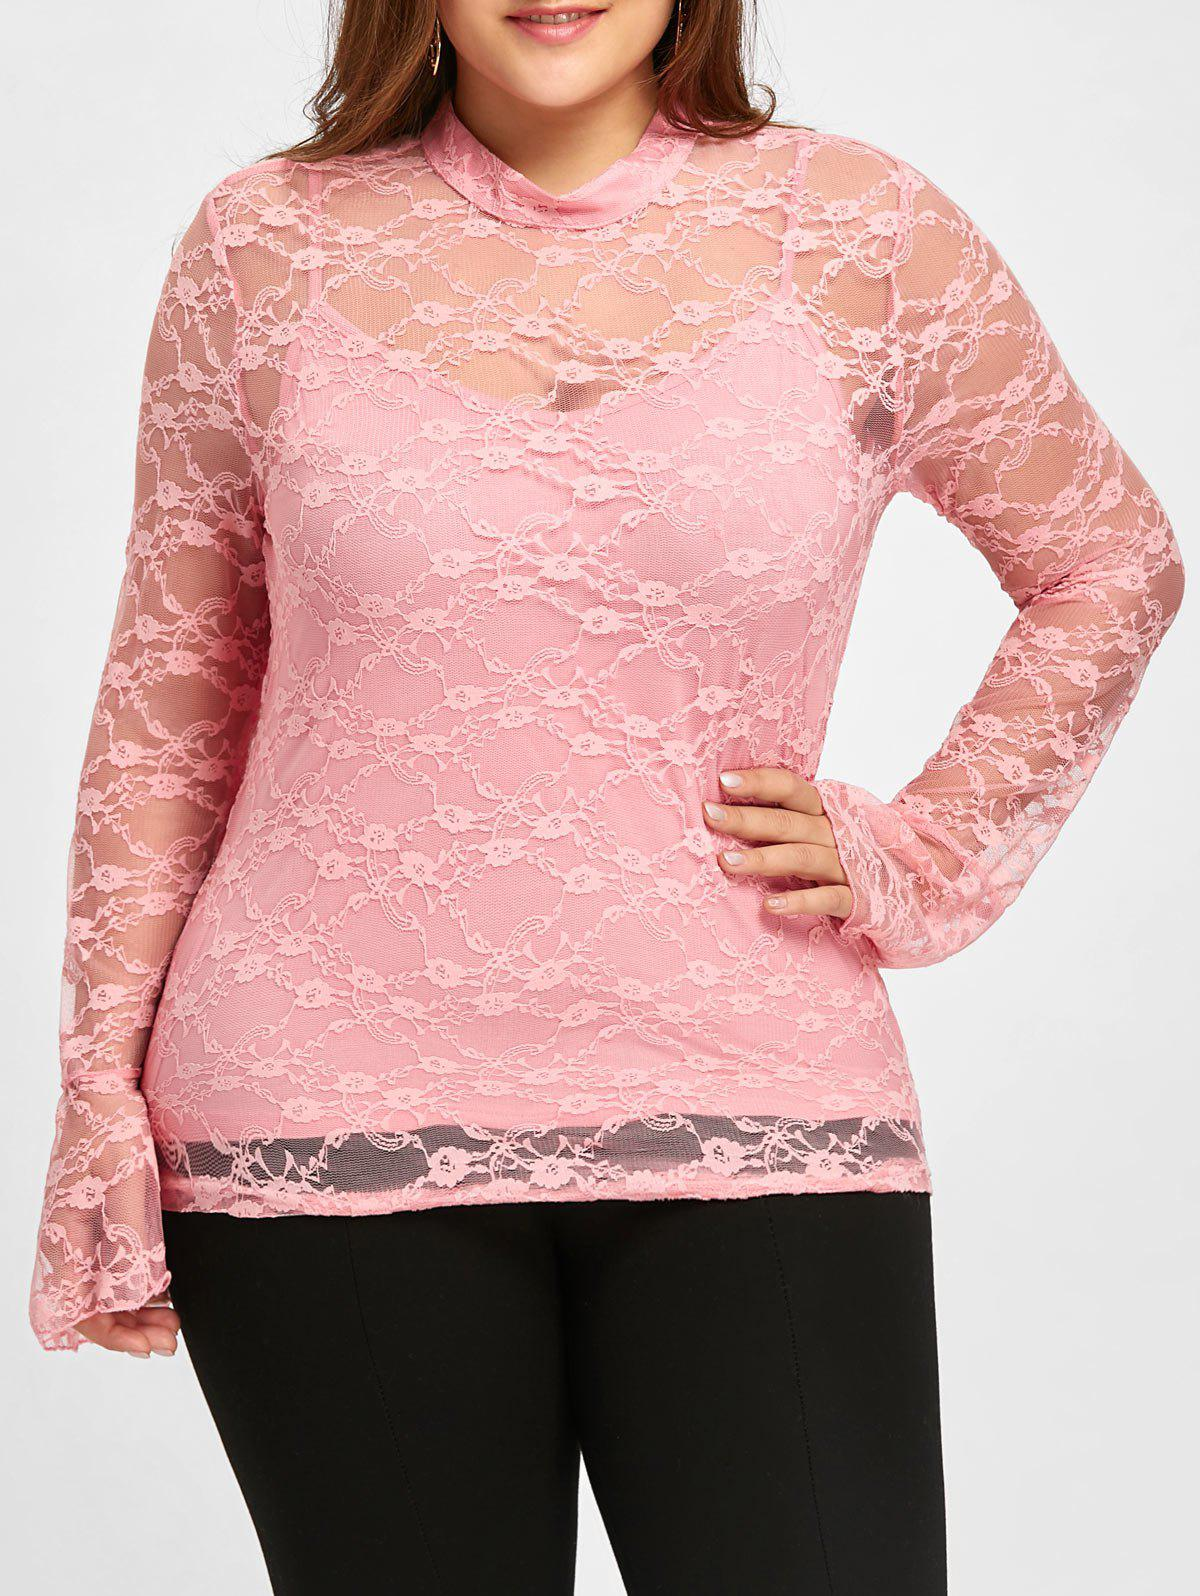 Plus Size Lace Blouse with Tank Top plus size printed sheer lace blouse with cami top